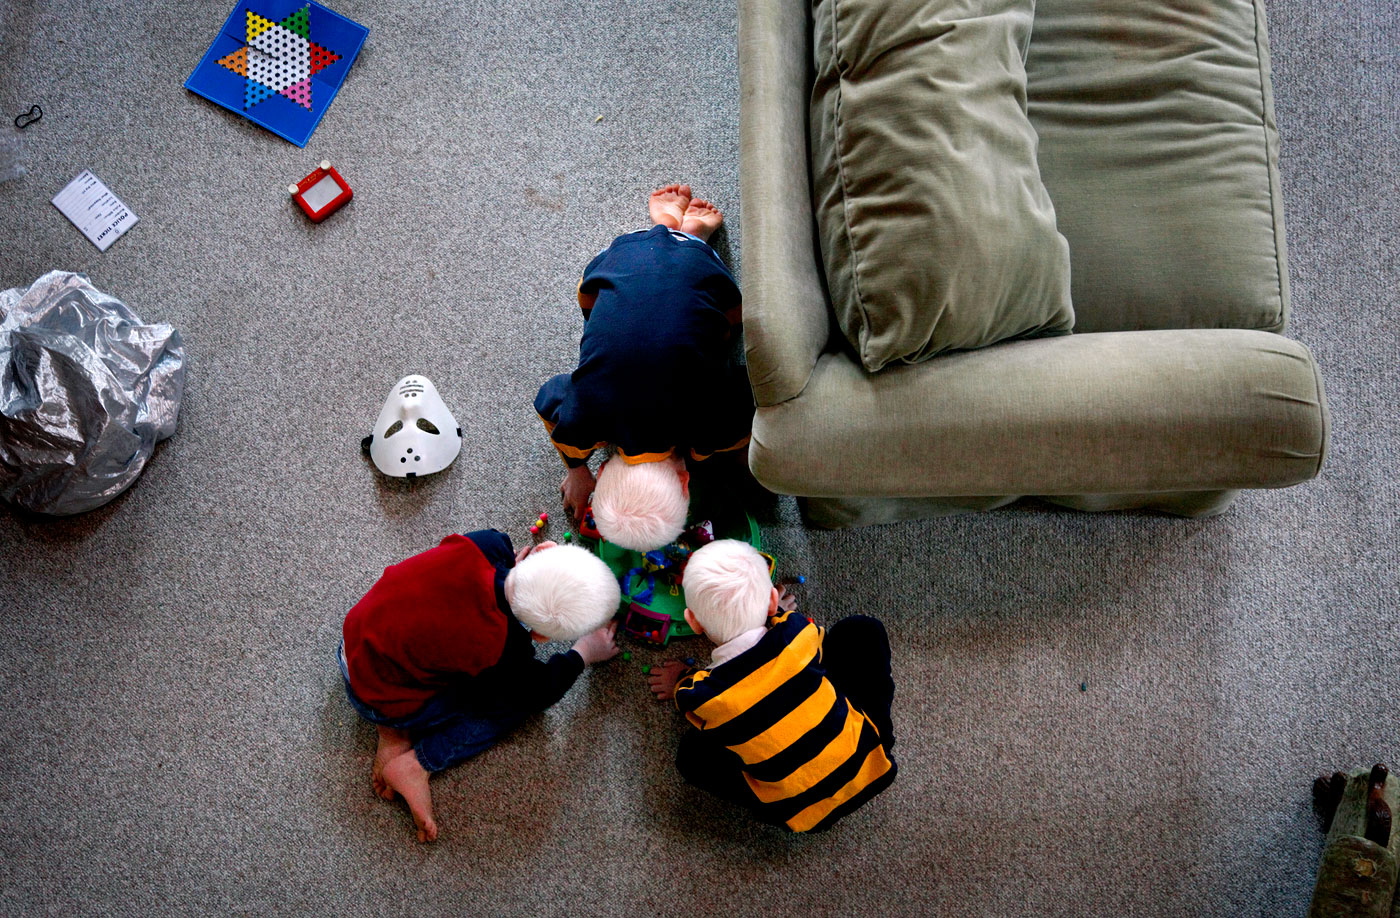 Micah (bottom right) plays with his brothers on his first morning at the Andersons' home in Isle of Wight, Va. Both Elijah and Paul were adopted at age 4. The brothers, who are not biologically related, are often mistaken for triplets.